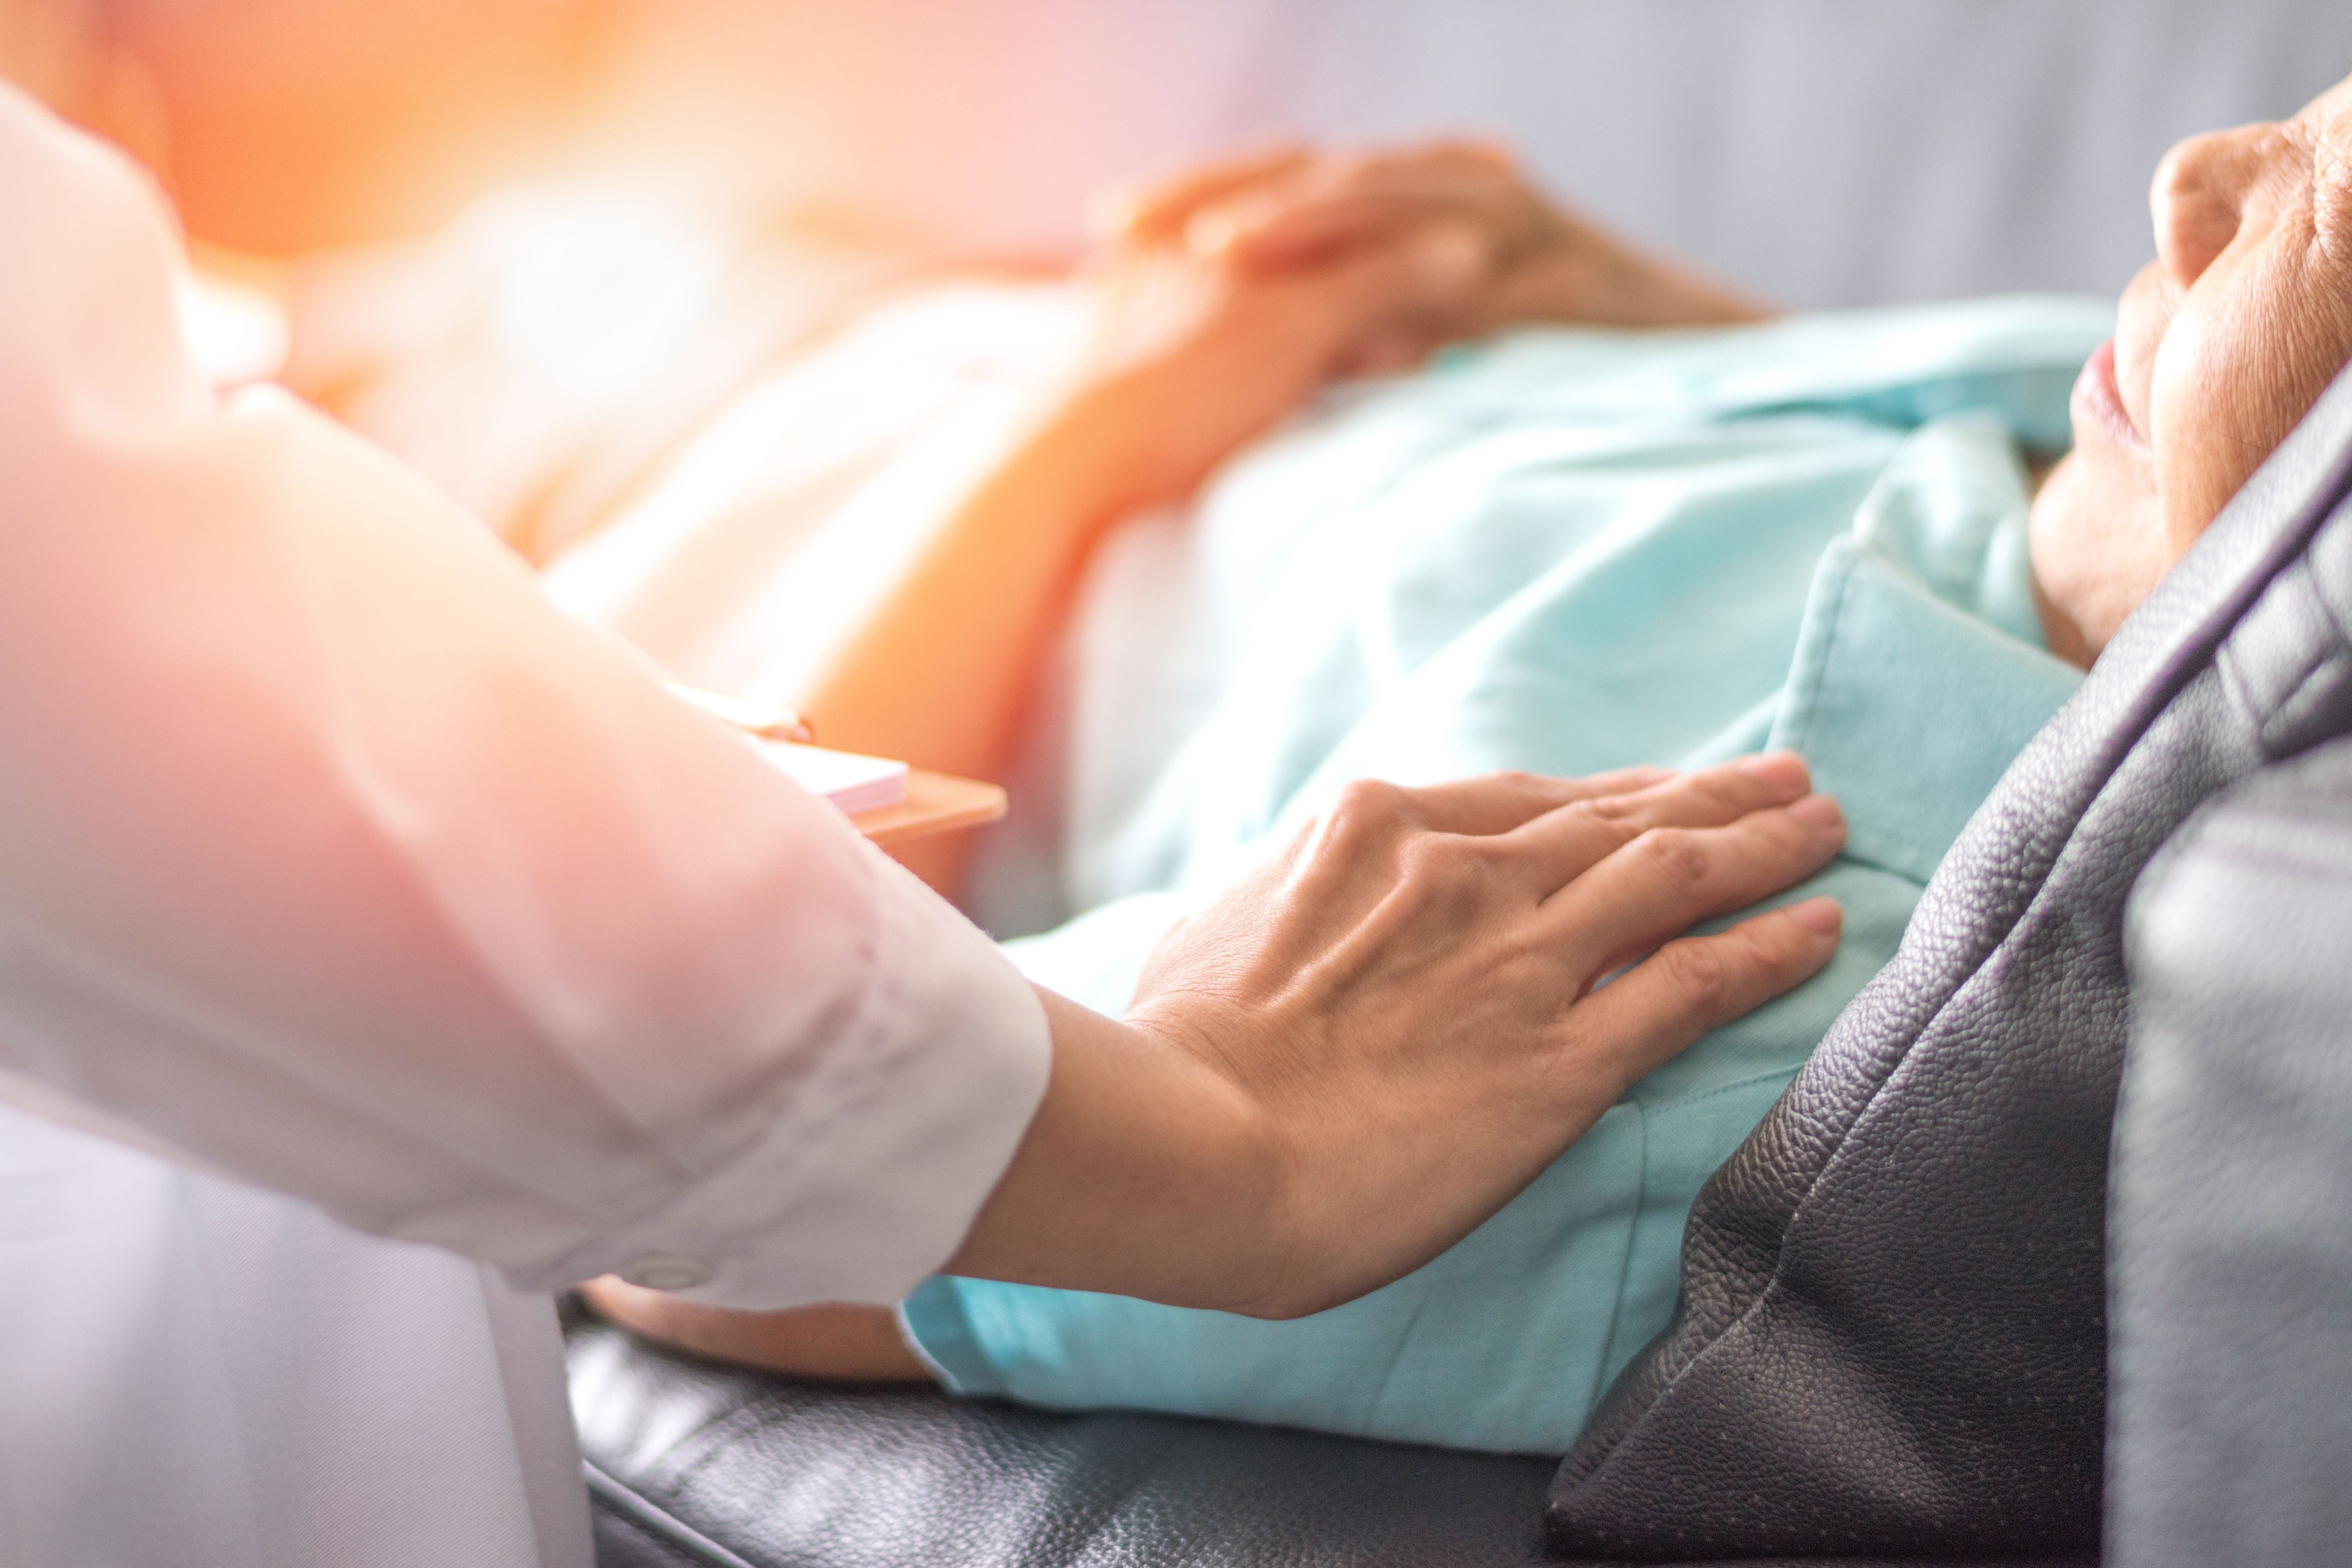 A doctor holding the patient's bed in a hospital. | Source: Shutterstock